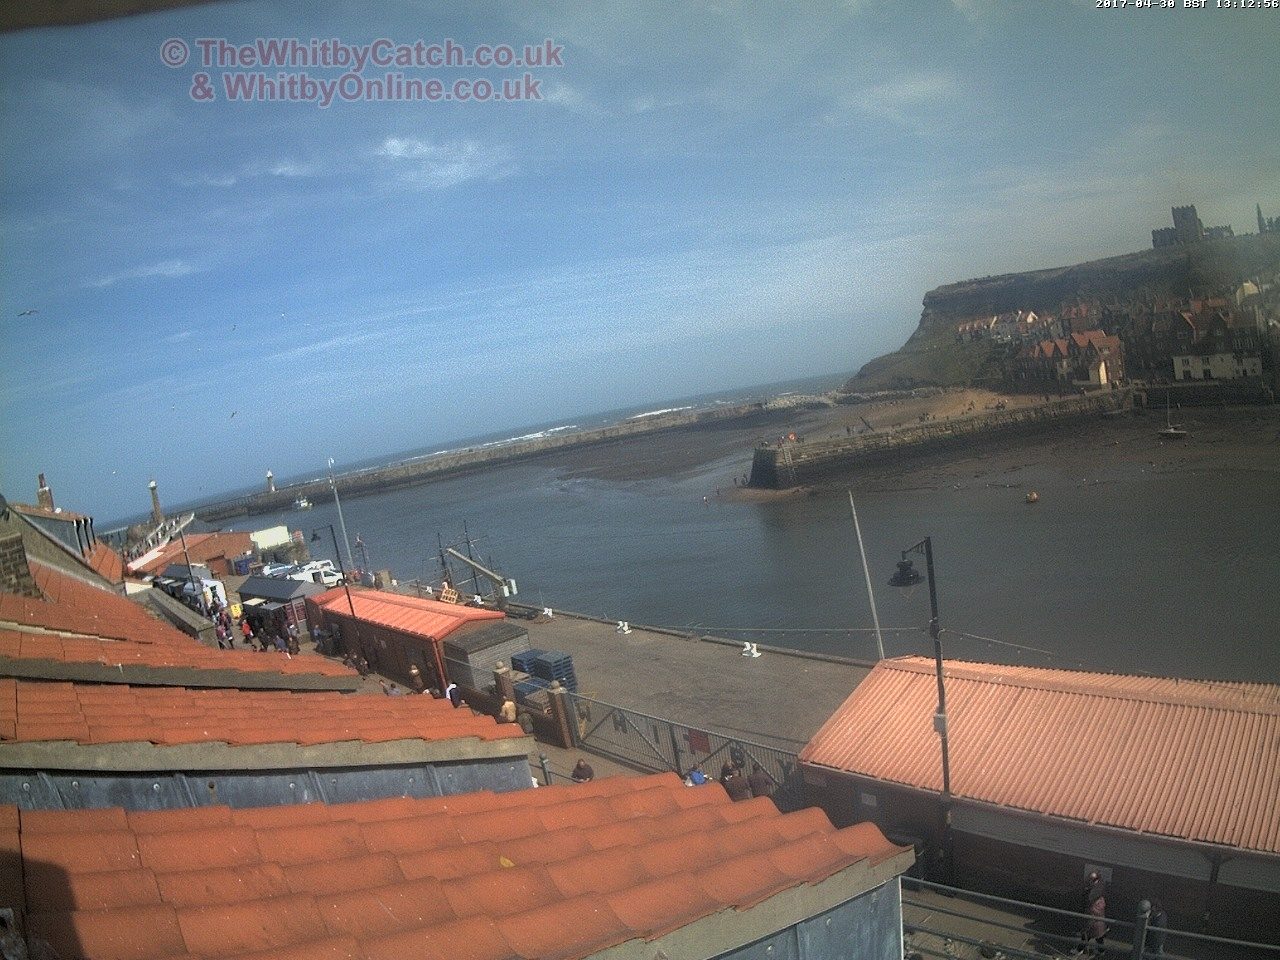 Whitby Sun 30th April 2017 13:13.